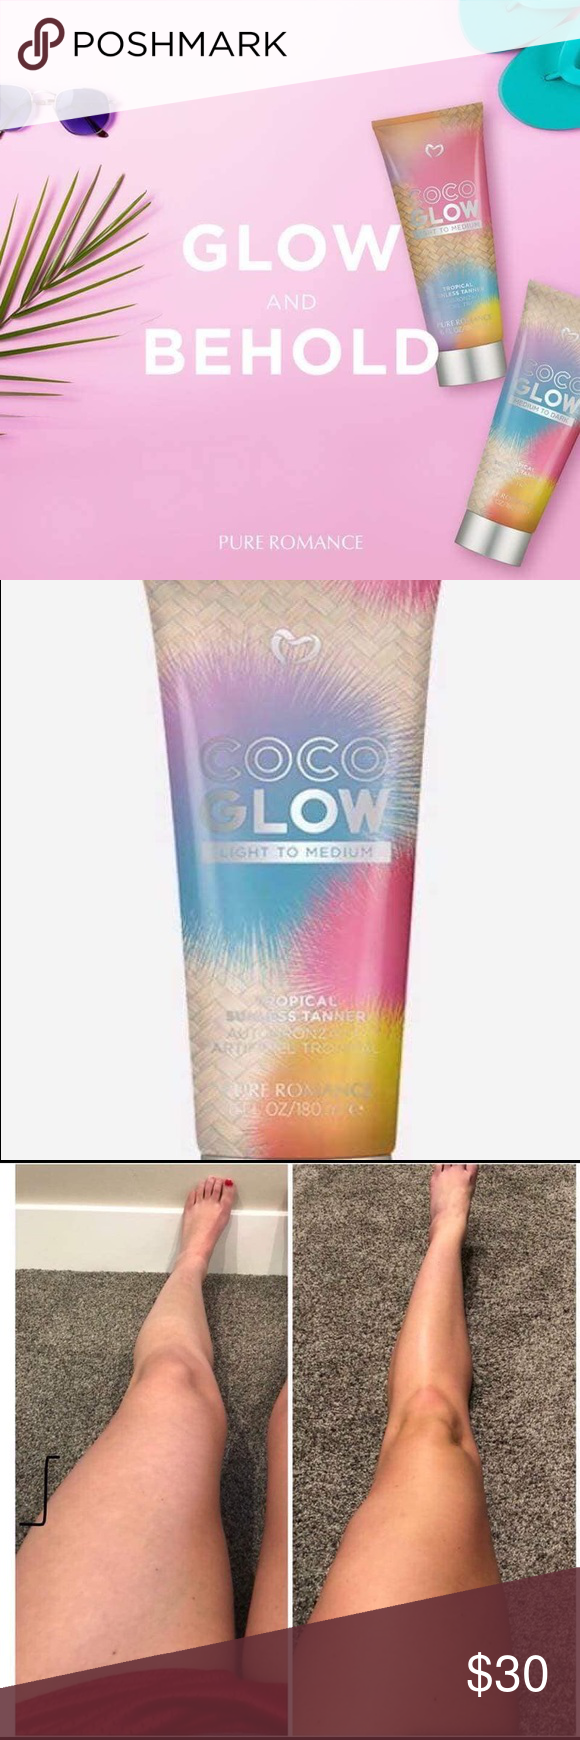 Coco Glow Self Tanning Lotion | Tanning lotion Self ...